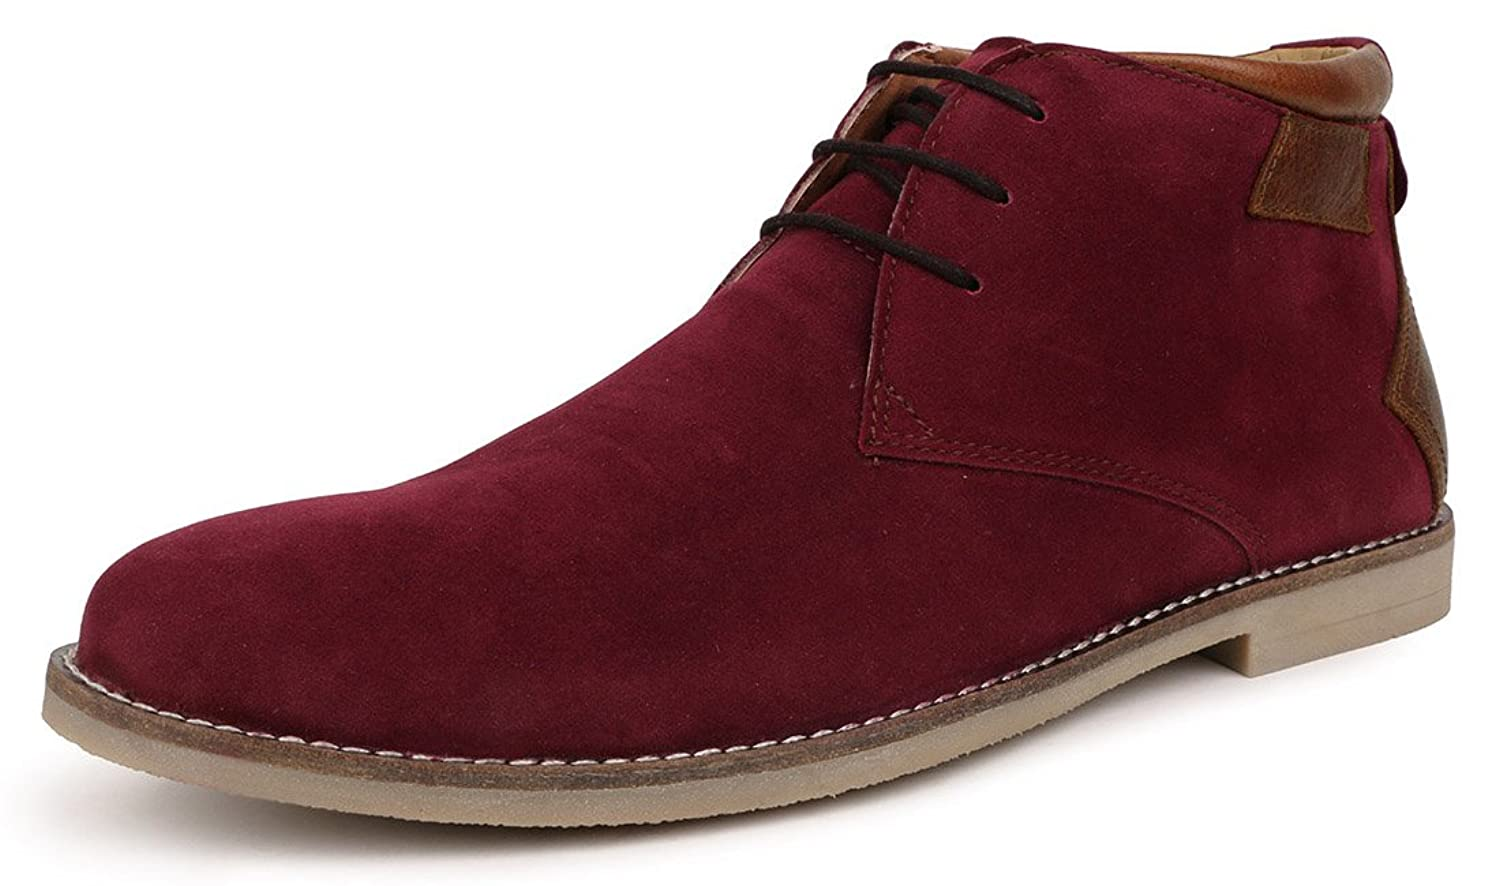 Escaro Men's Casual Lace Up Chukka Boots